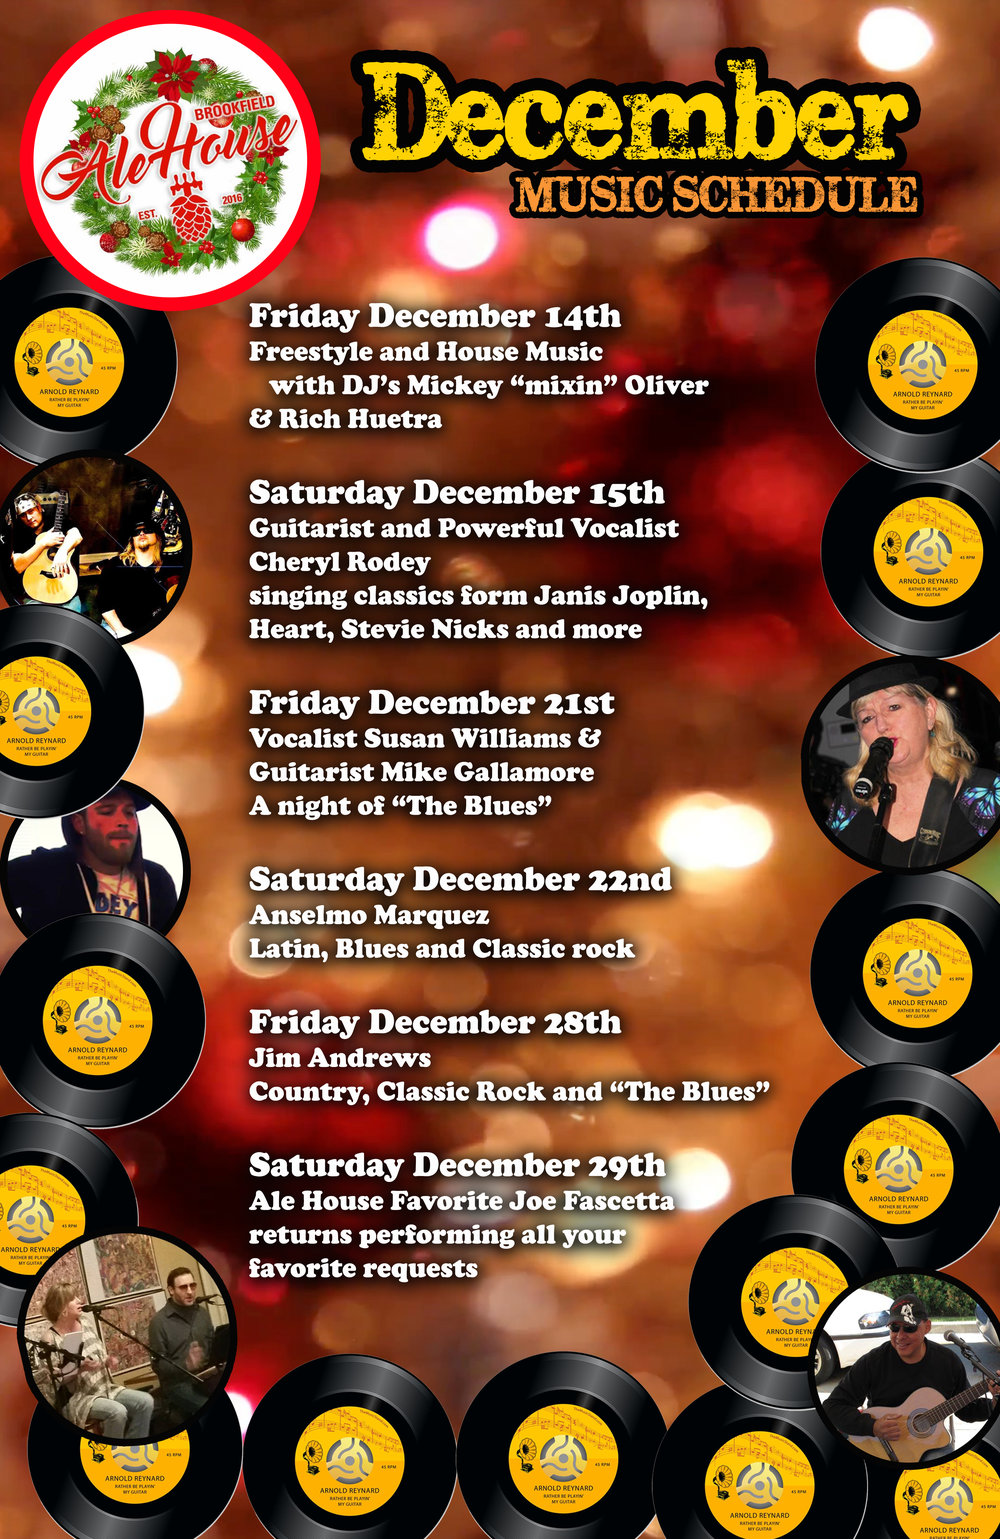 ALEHOUSE DEC POSTER.jpg